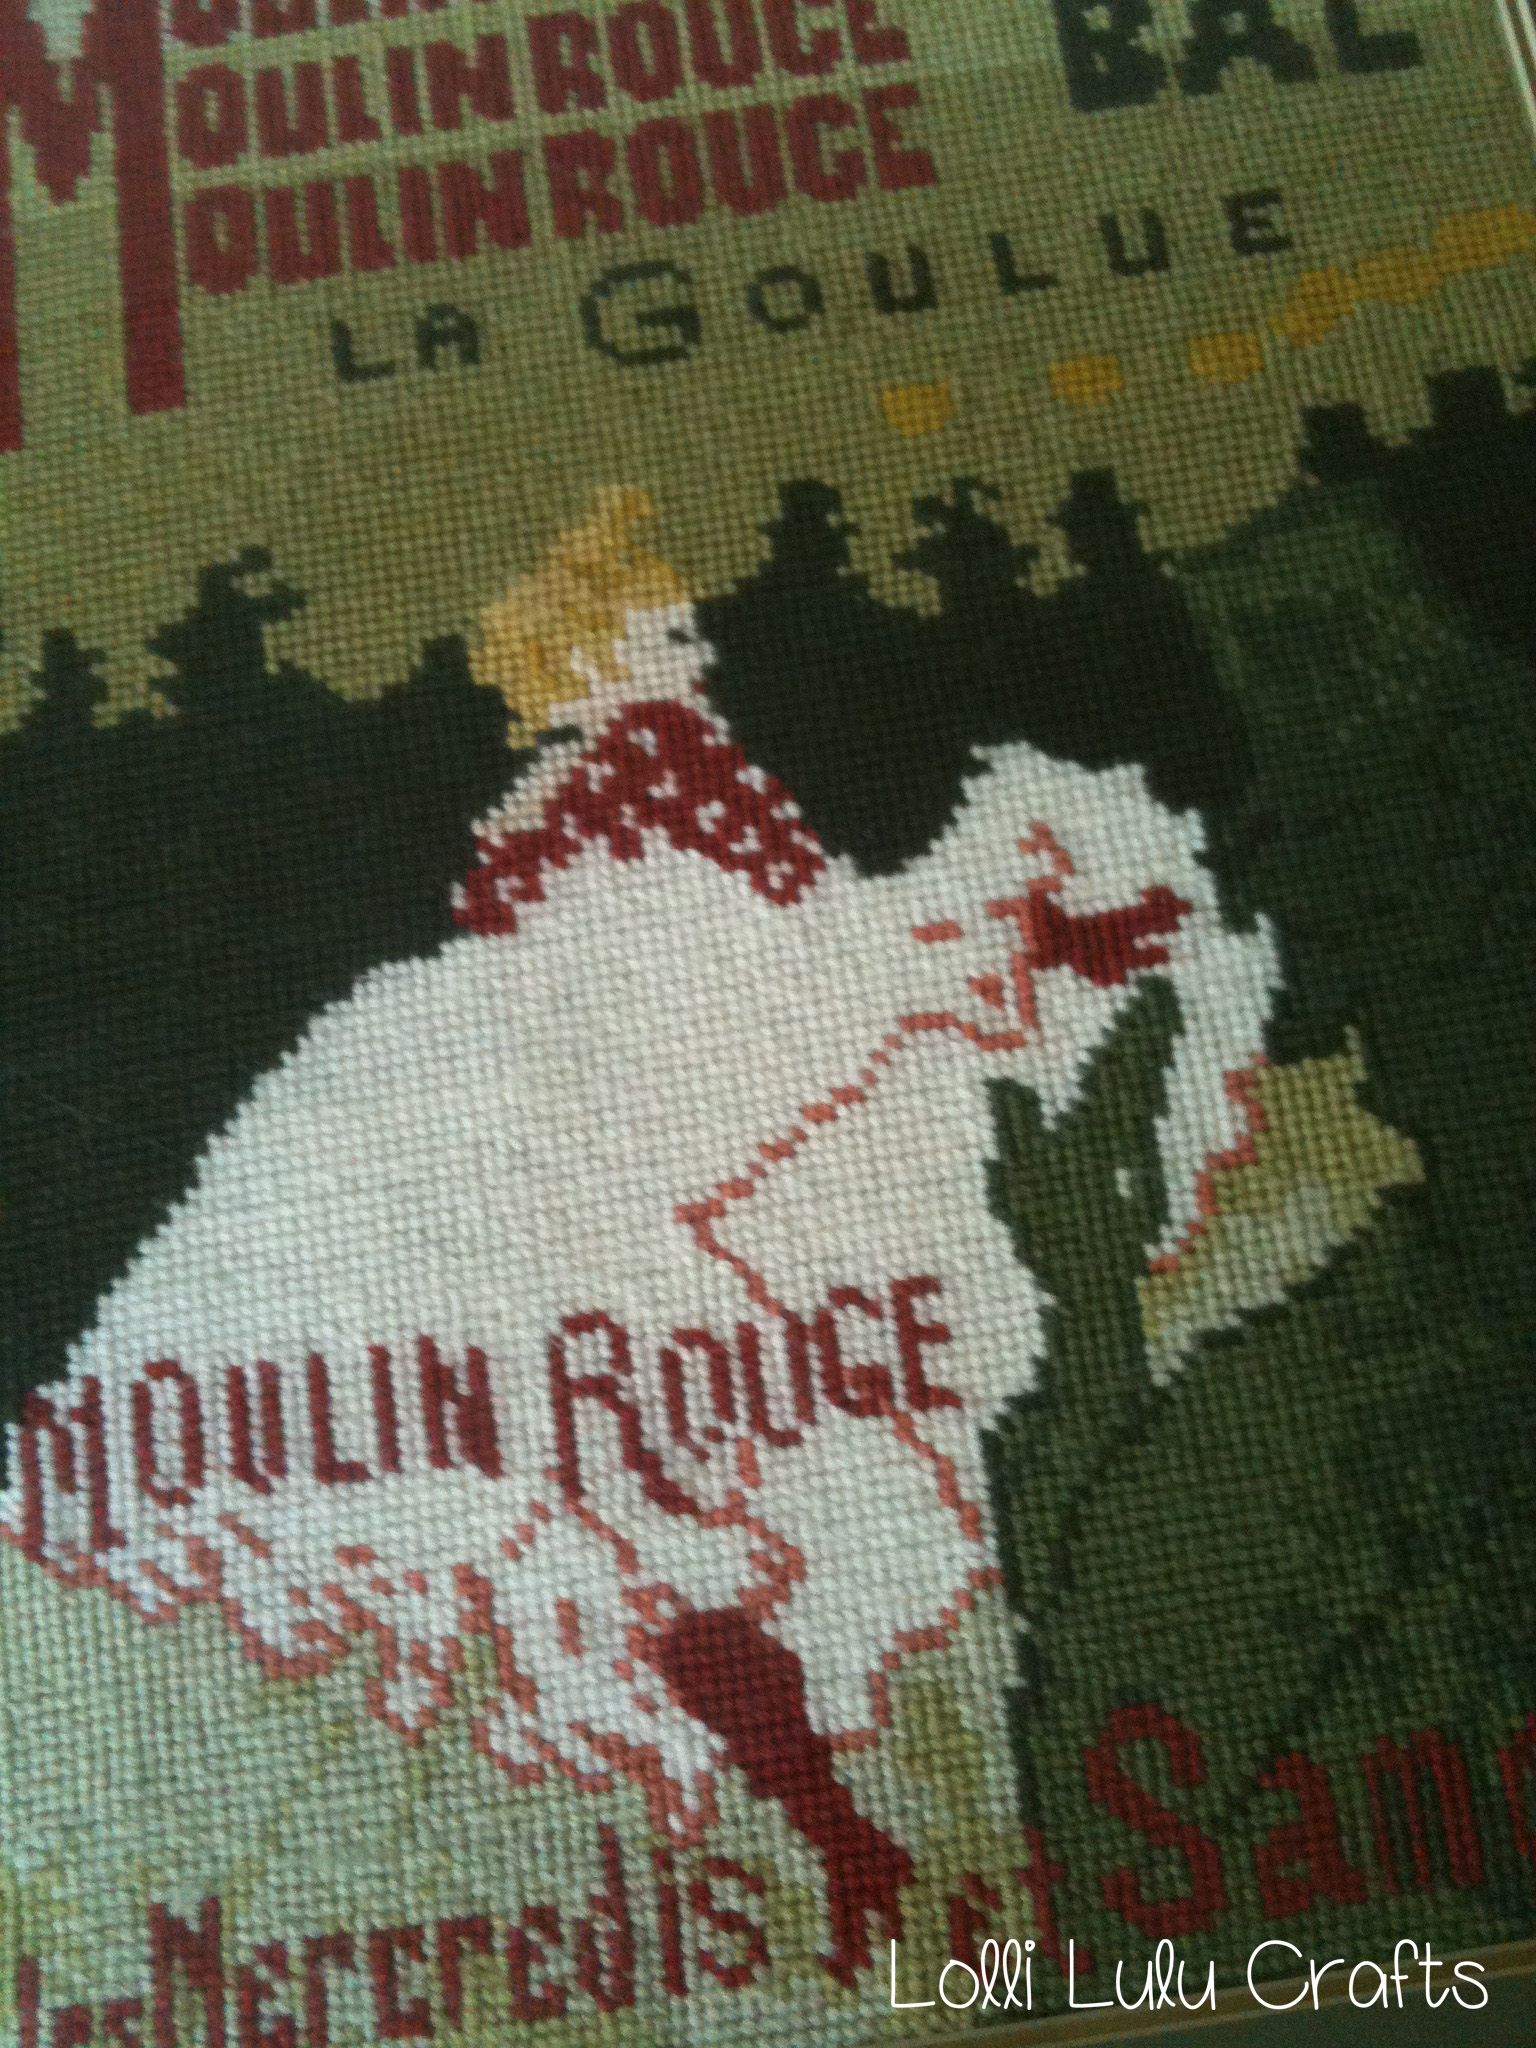 Smoulin rouge2